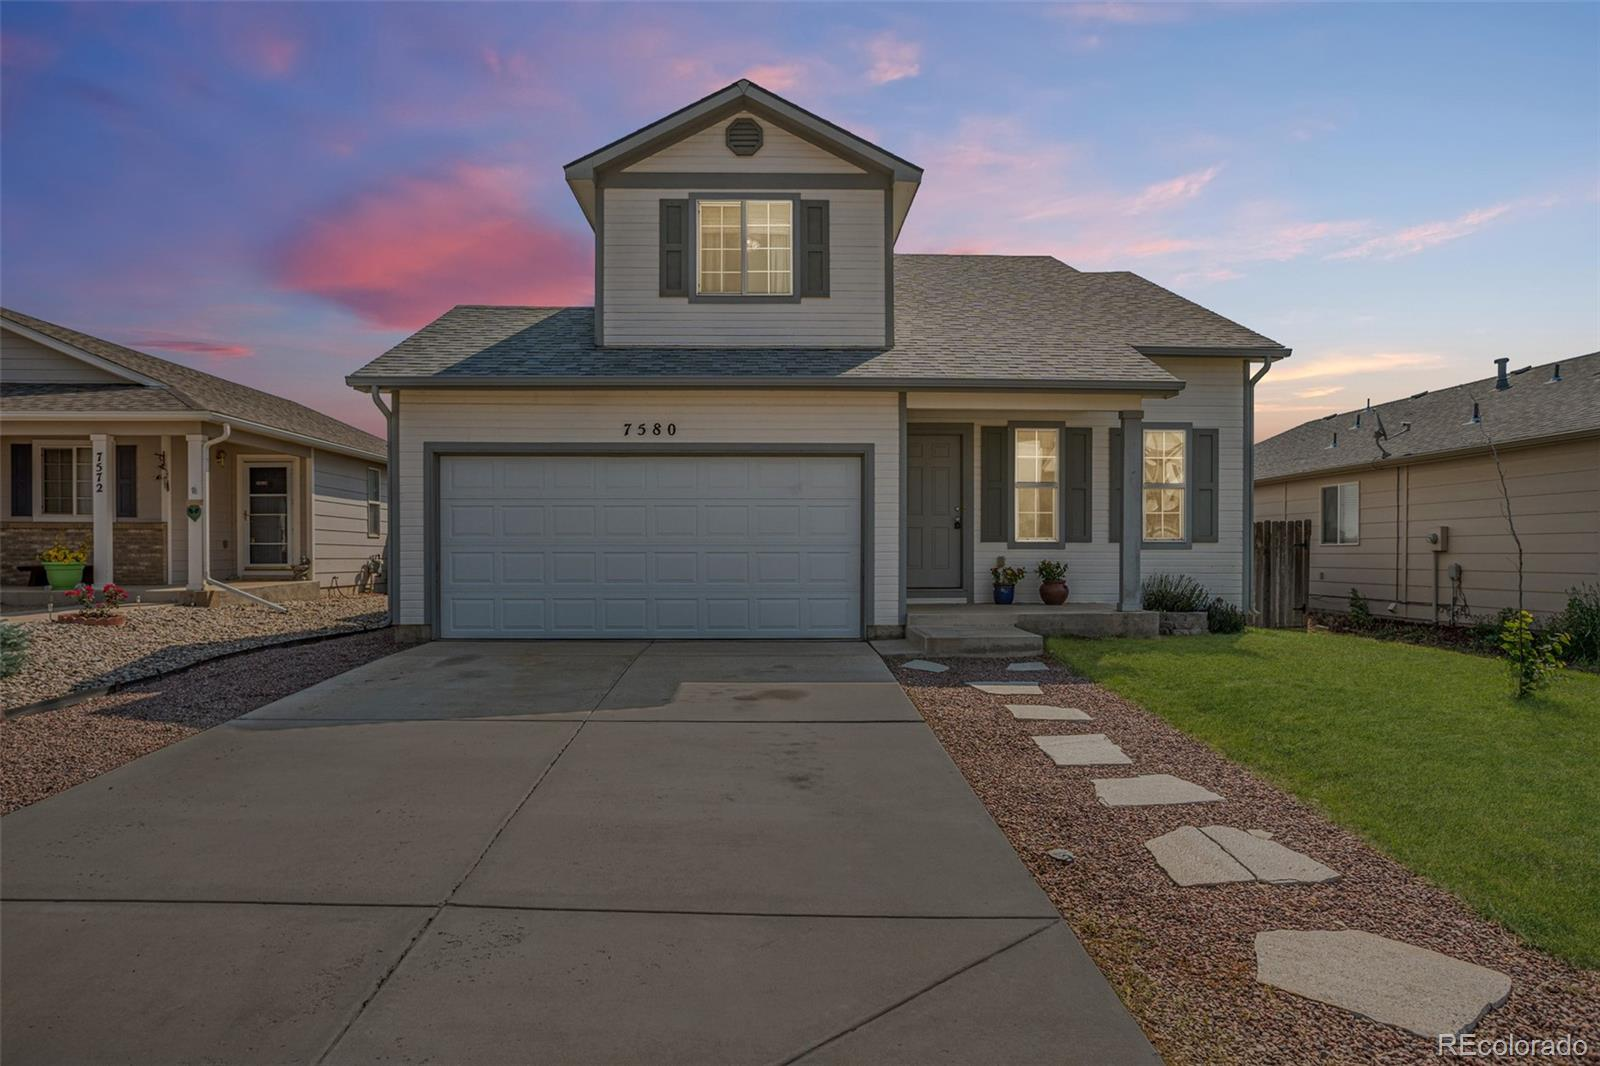 MLS# 6387968 - 1 - 7580 Middle Bay Way, Fountain, CO 80817